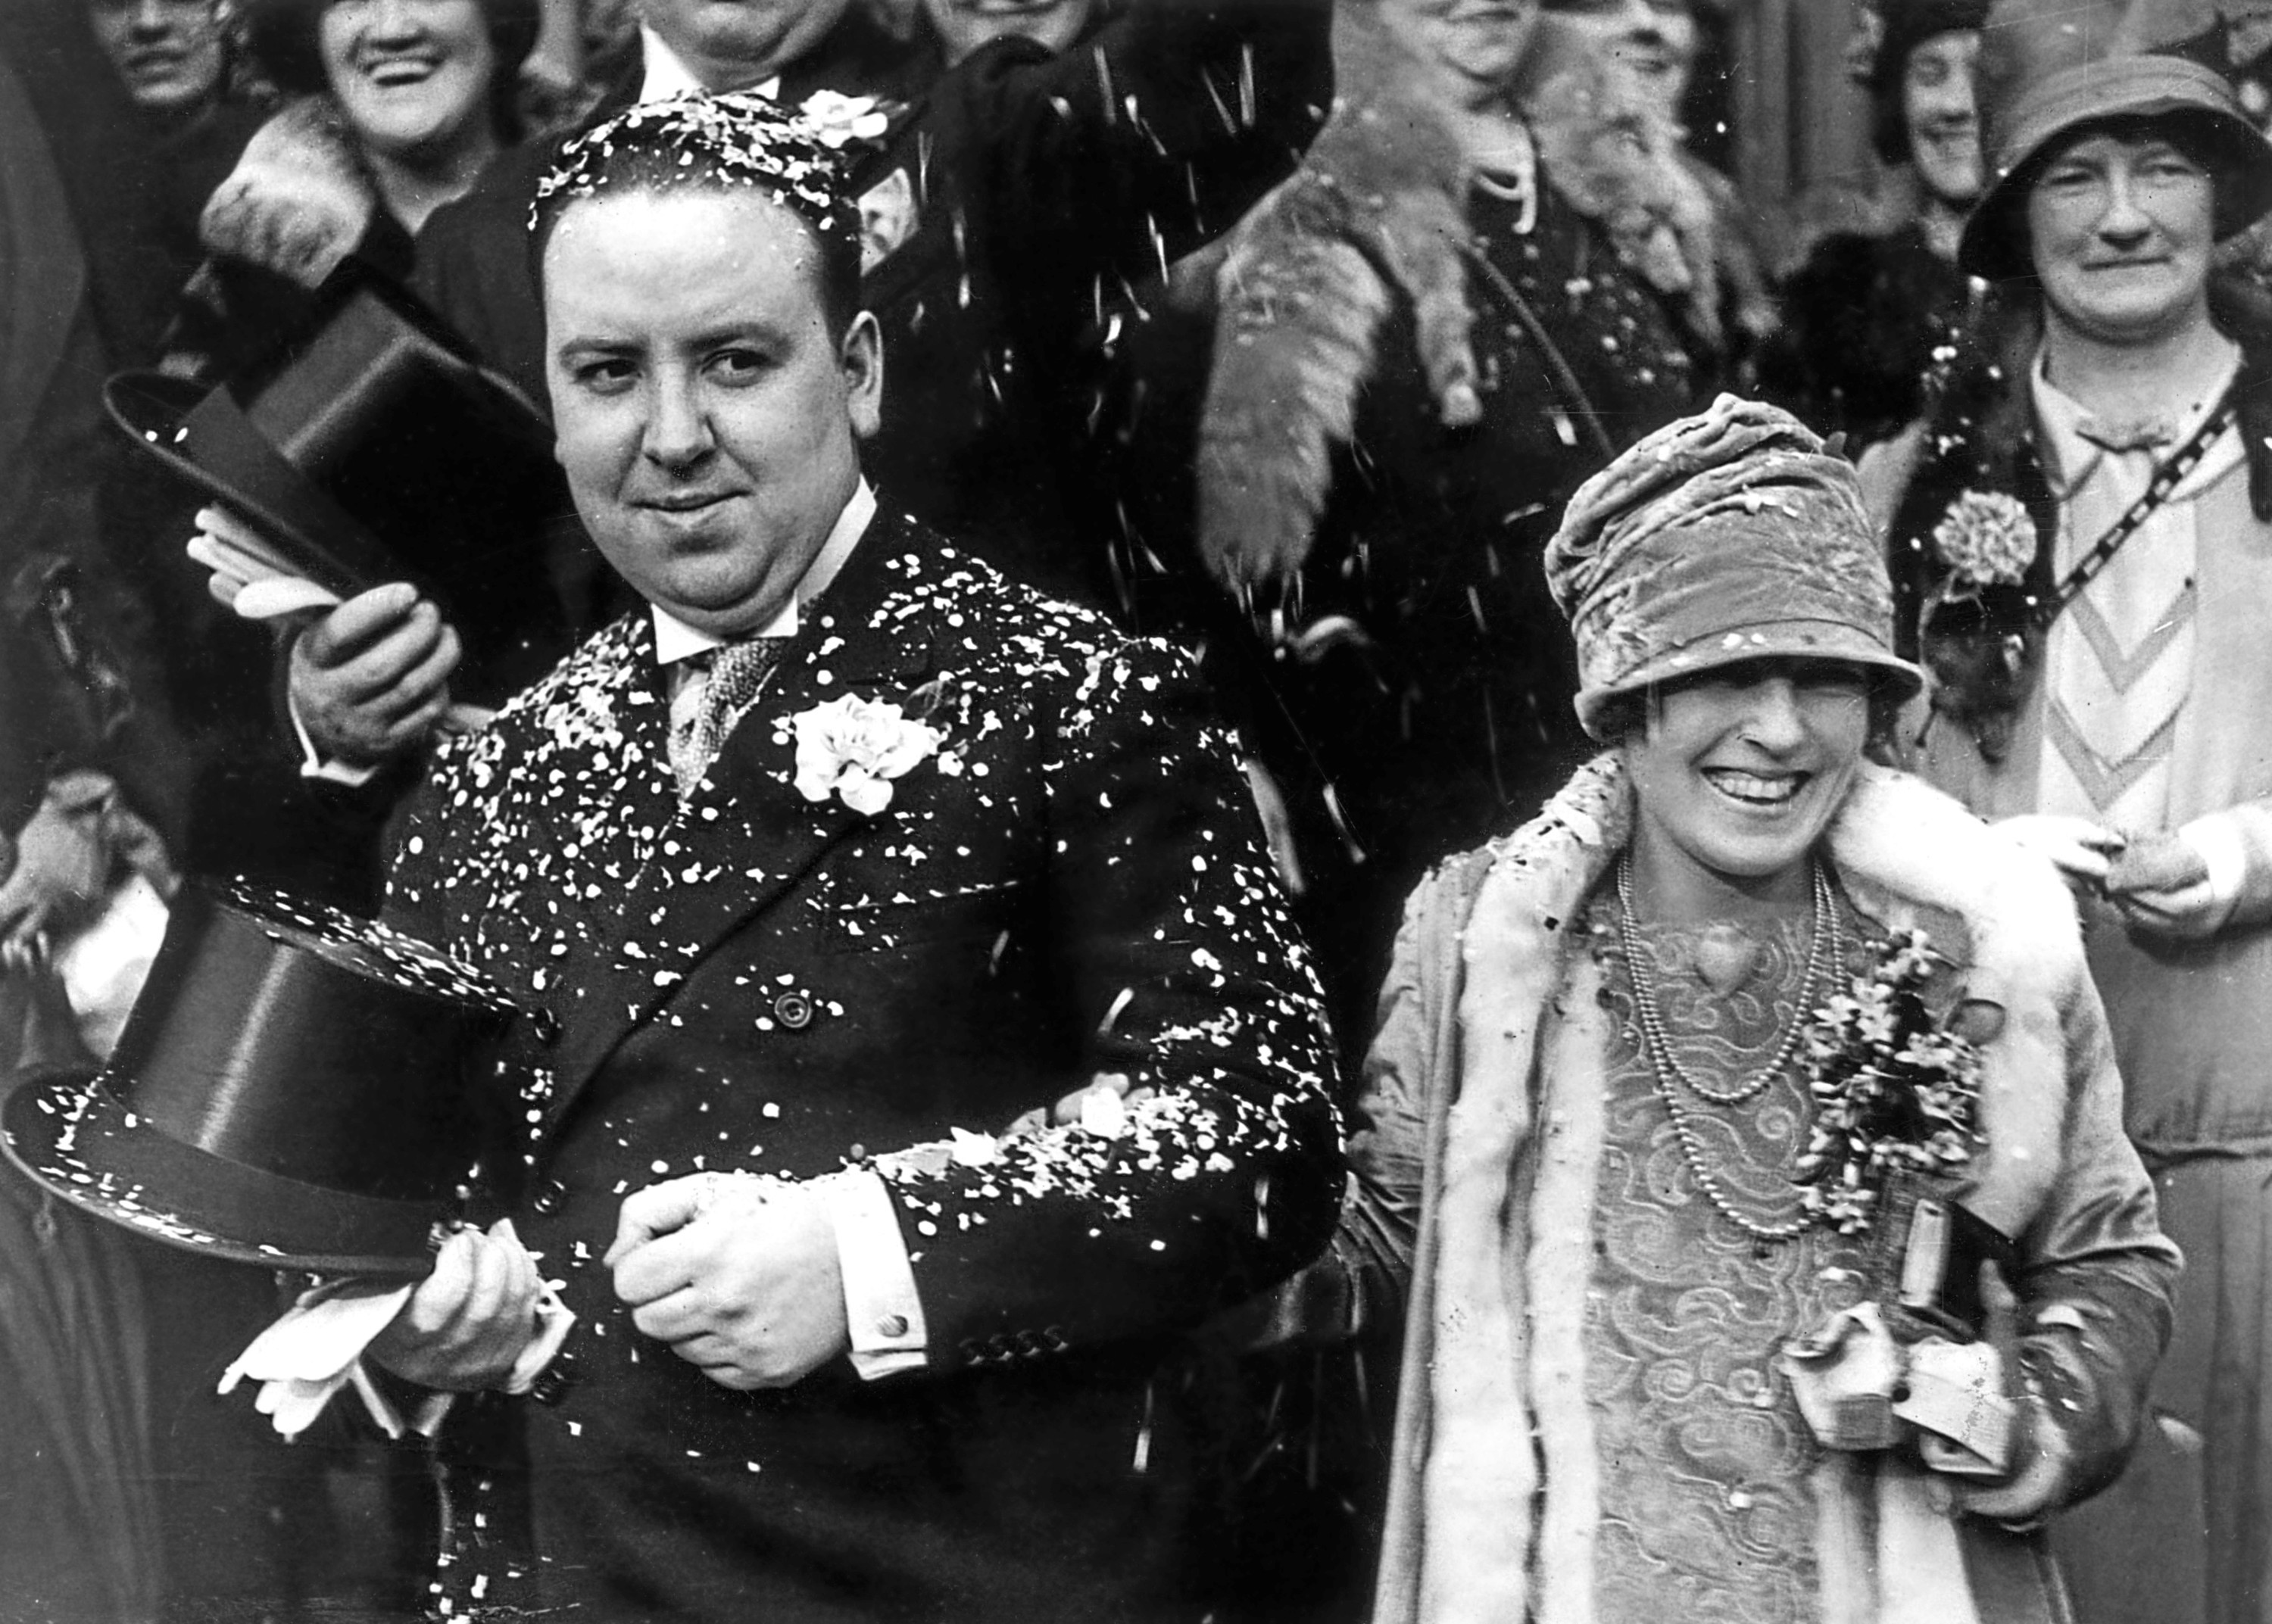 Perhaps Hitchcock's greatest achievement was lifelong marriage to Alma (Evening Standard/Getty Images)